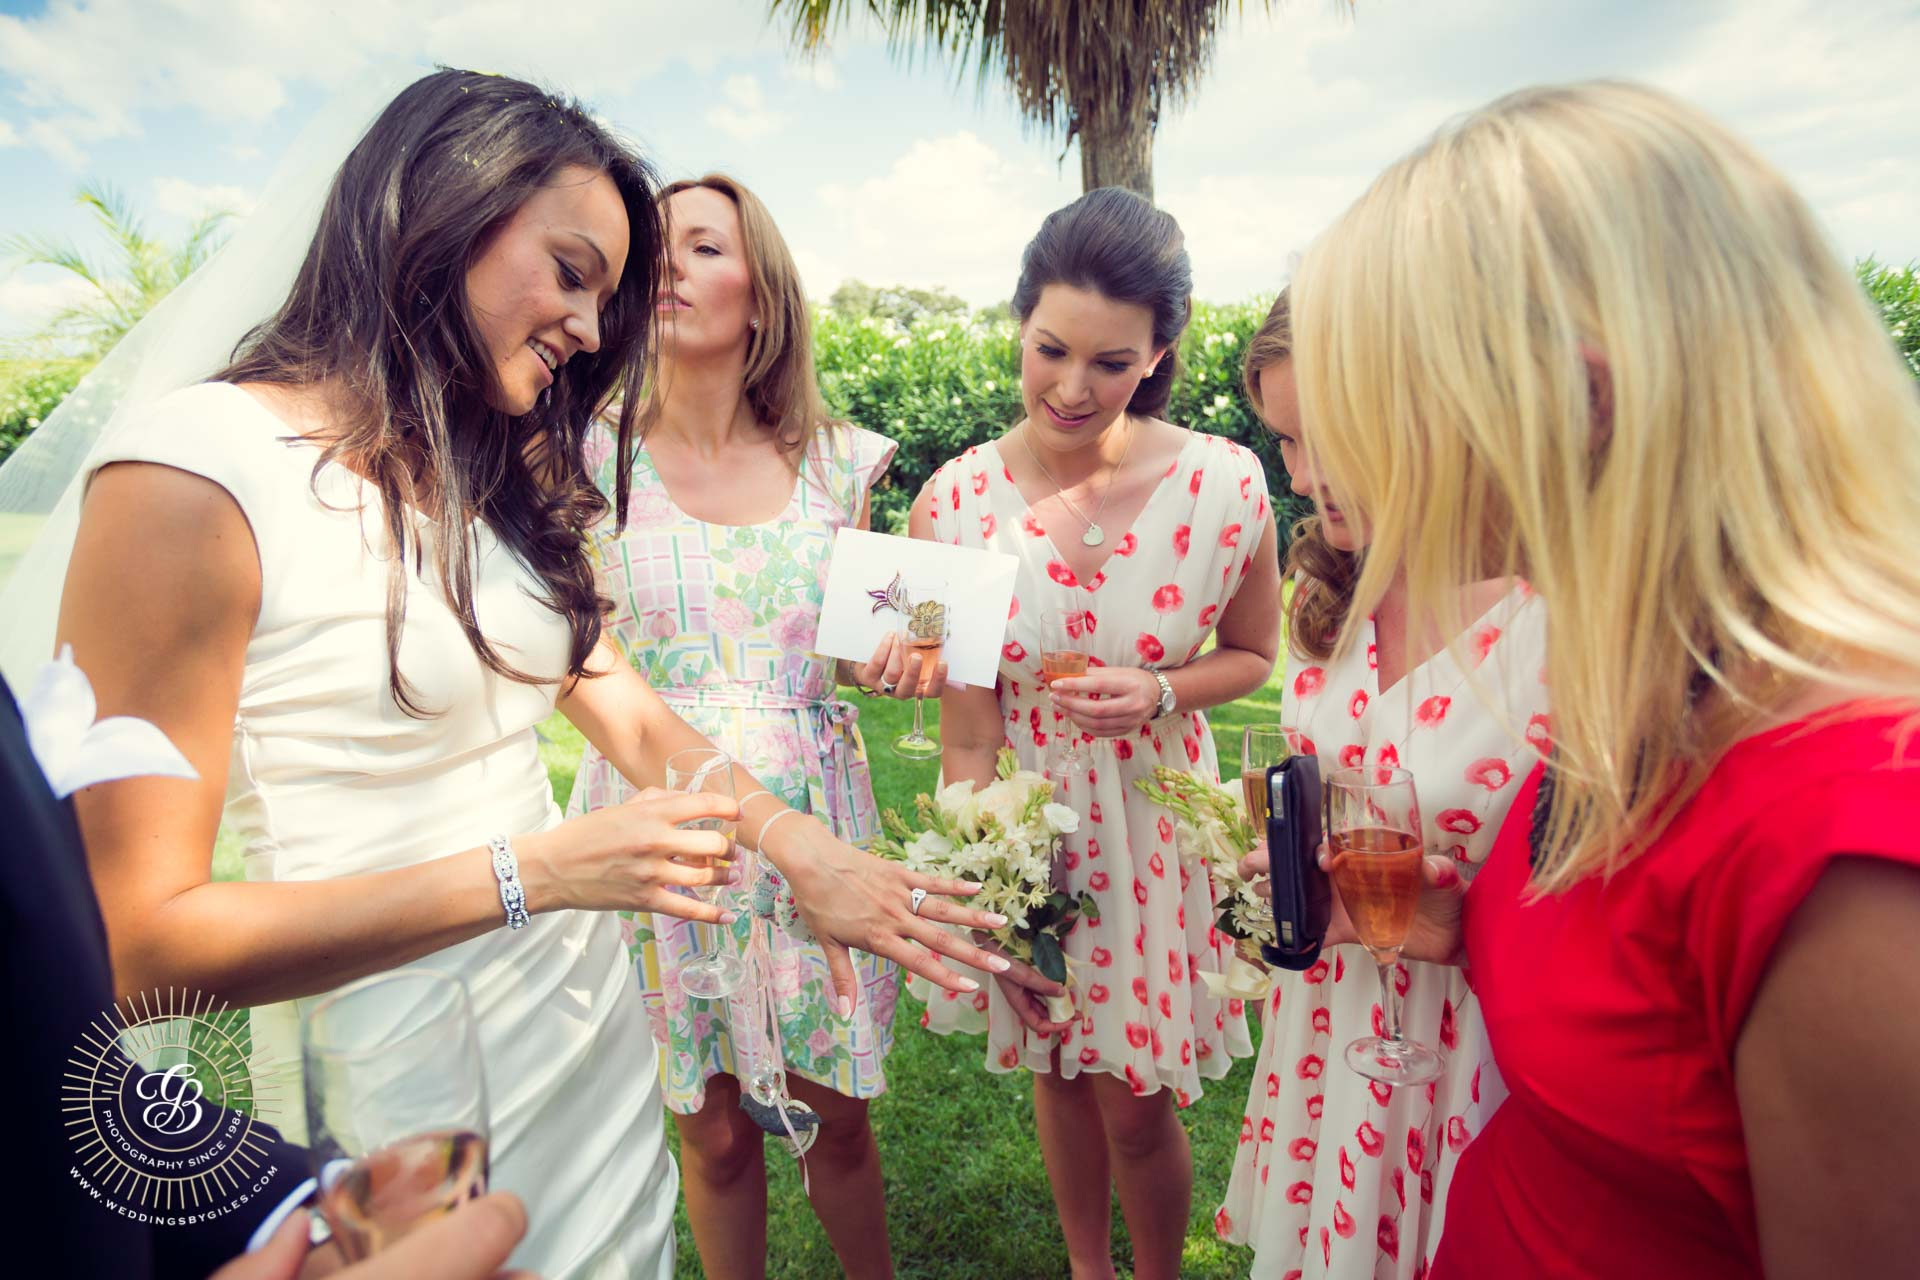 Bride shows off her ring to girl friends